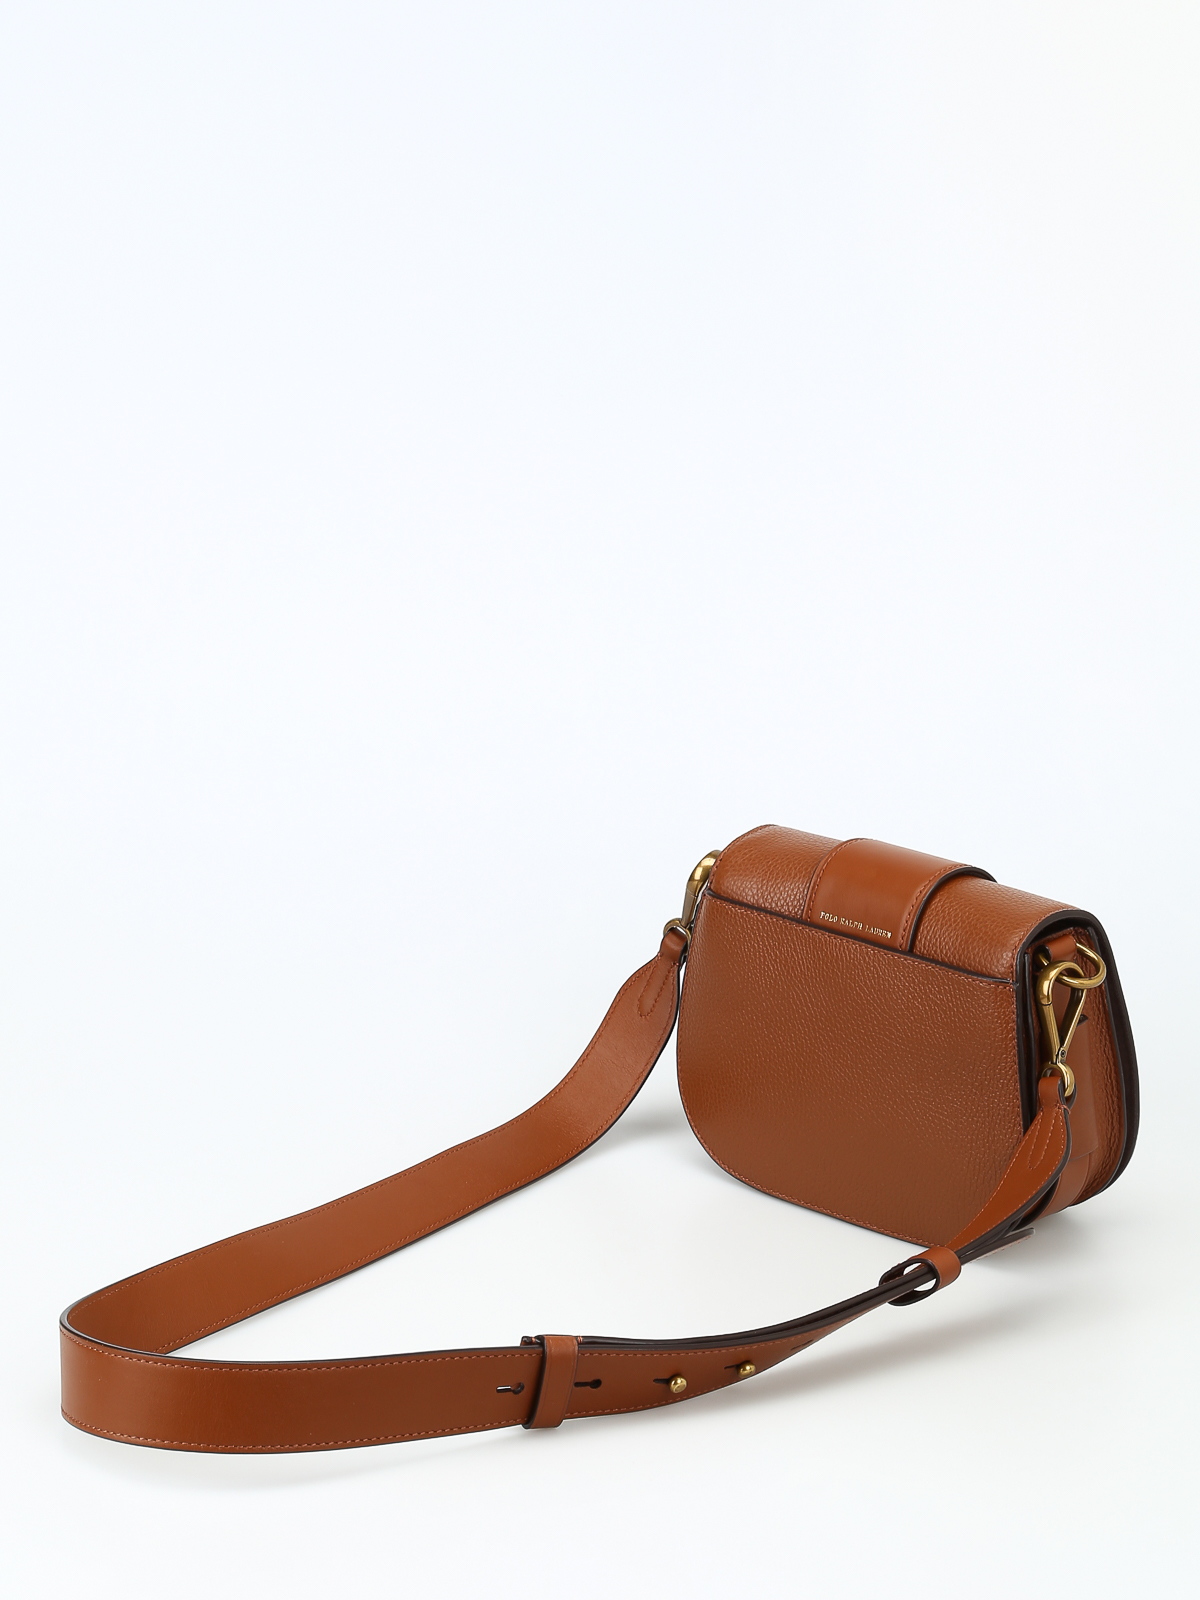 iKRIX POLO RALPH LAUREN  cross body bags - Hammered leather saddle bag b792e34781a8e